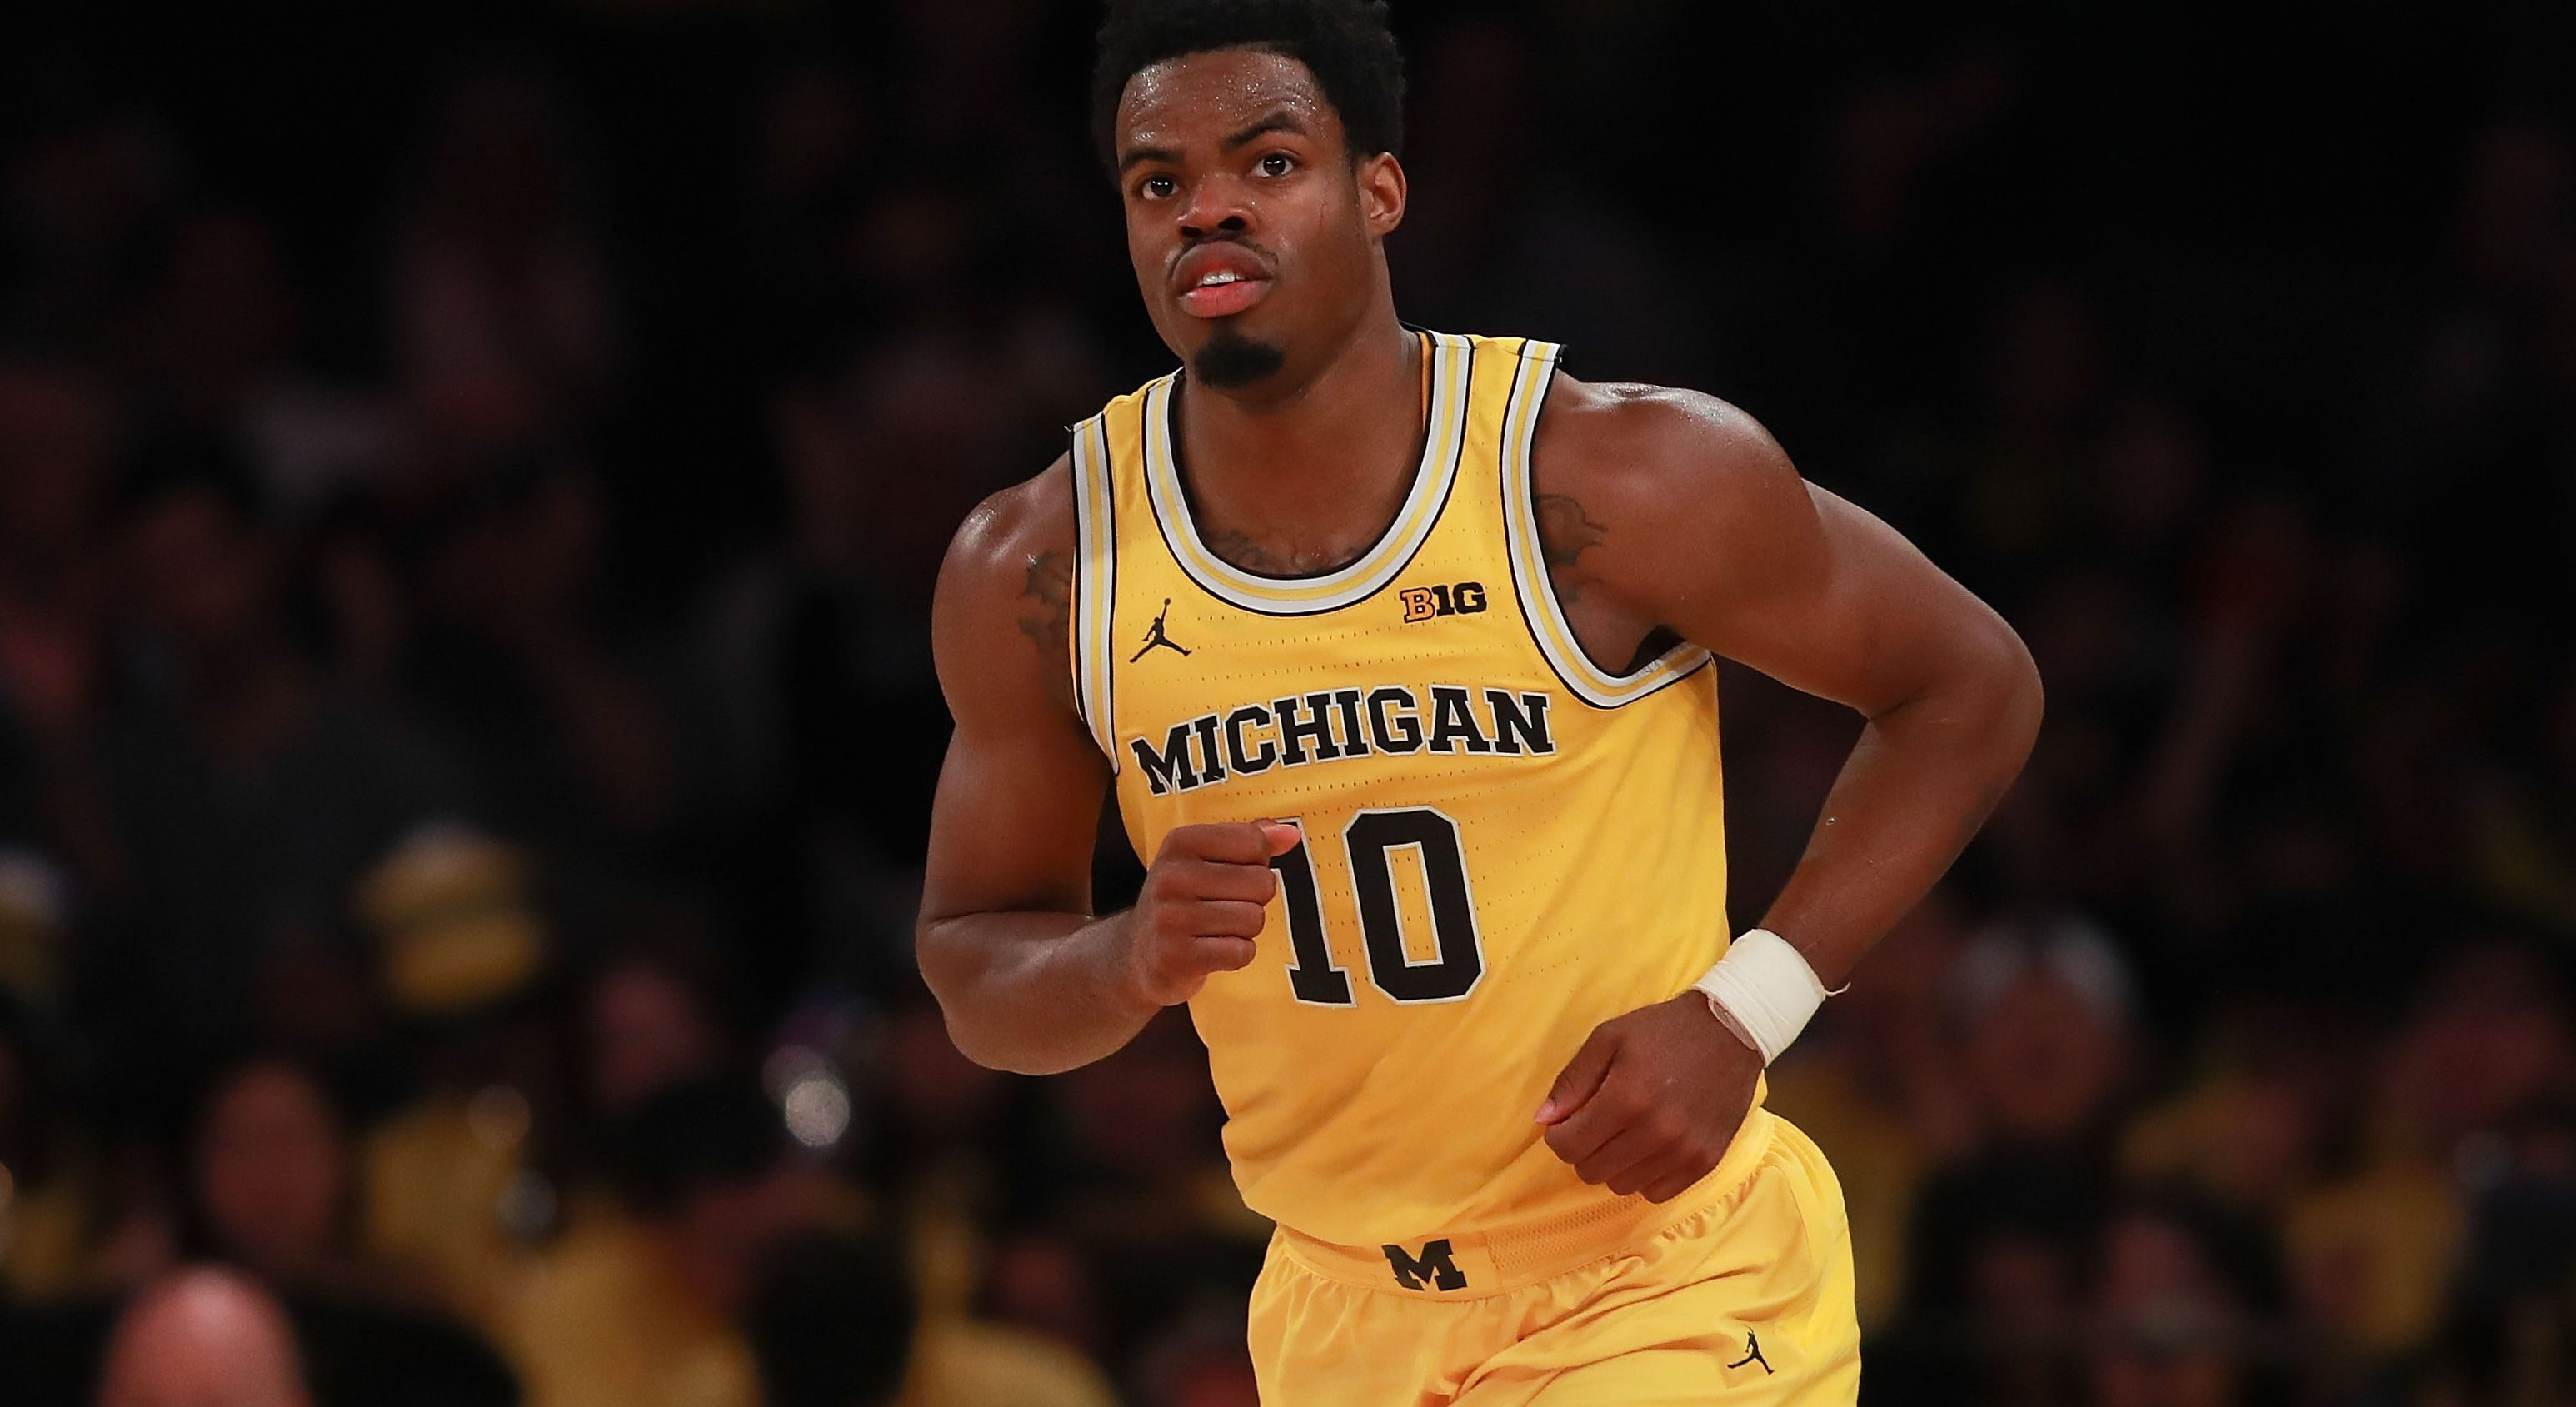 NEW YORK, NY - NOVEMBER 18: Derrick Walton Jr. #10 of the Michigan Wolverines reacts after hitting a three pointer against the Southern Methodist Mustangs in the second half of the 2K Classic Championship at Madison Square Garden on November 18, 2016 in New York City. (Photo by Michael Reaves/Getty Images)